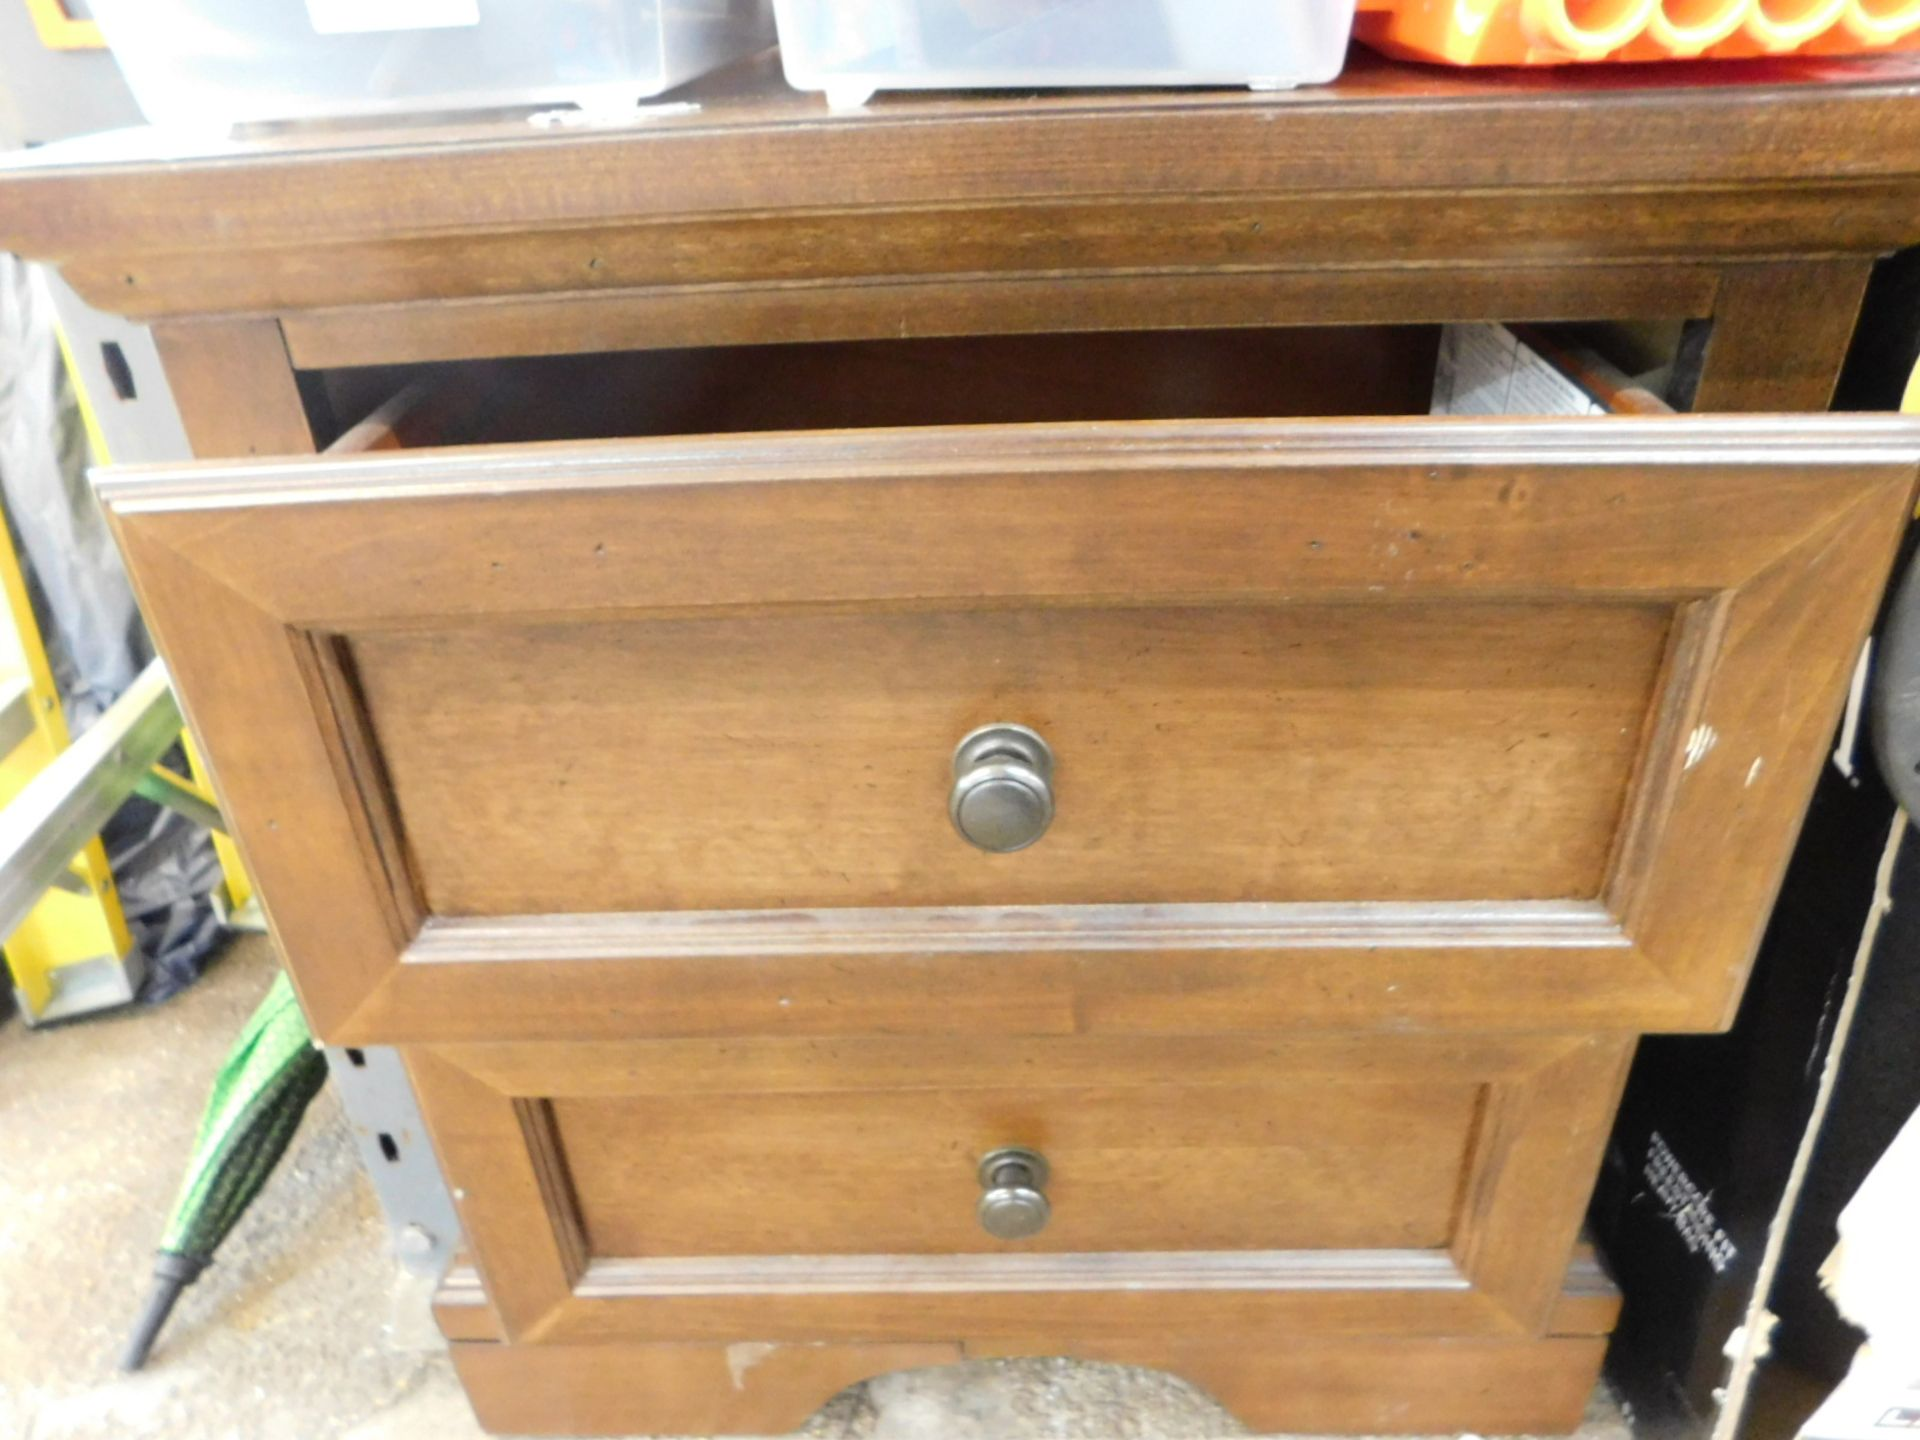 Lot 315 - 1 UNIVERSAL BROADMOORE NIGHTSTAND WITH 2 STORAGE DRAWERS RRP £119.99